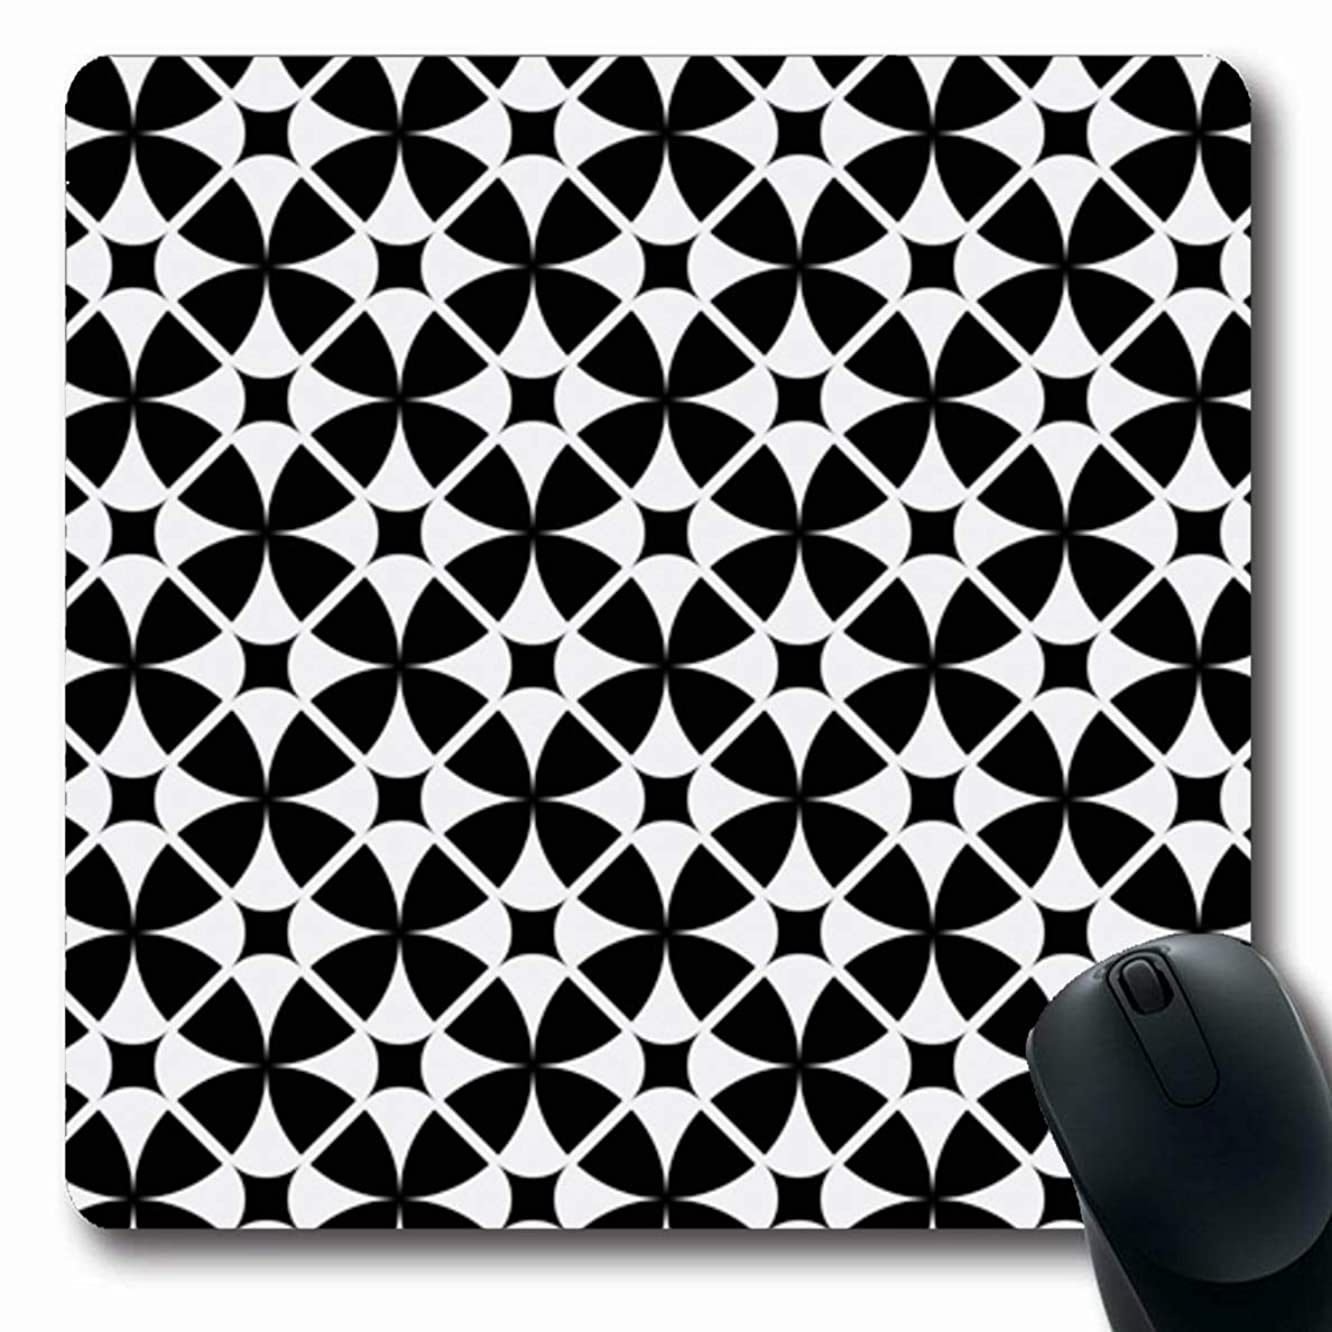 Ahawoso Mousepad for Computer Notebook Circus Diamond Abstract Vintage Geometric Pattern Modern Geo Black Mid Century Quatrefoil White Oblong Shape 7.9 x 9.5 Inches Non-Slip Gaming Mouse Pad